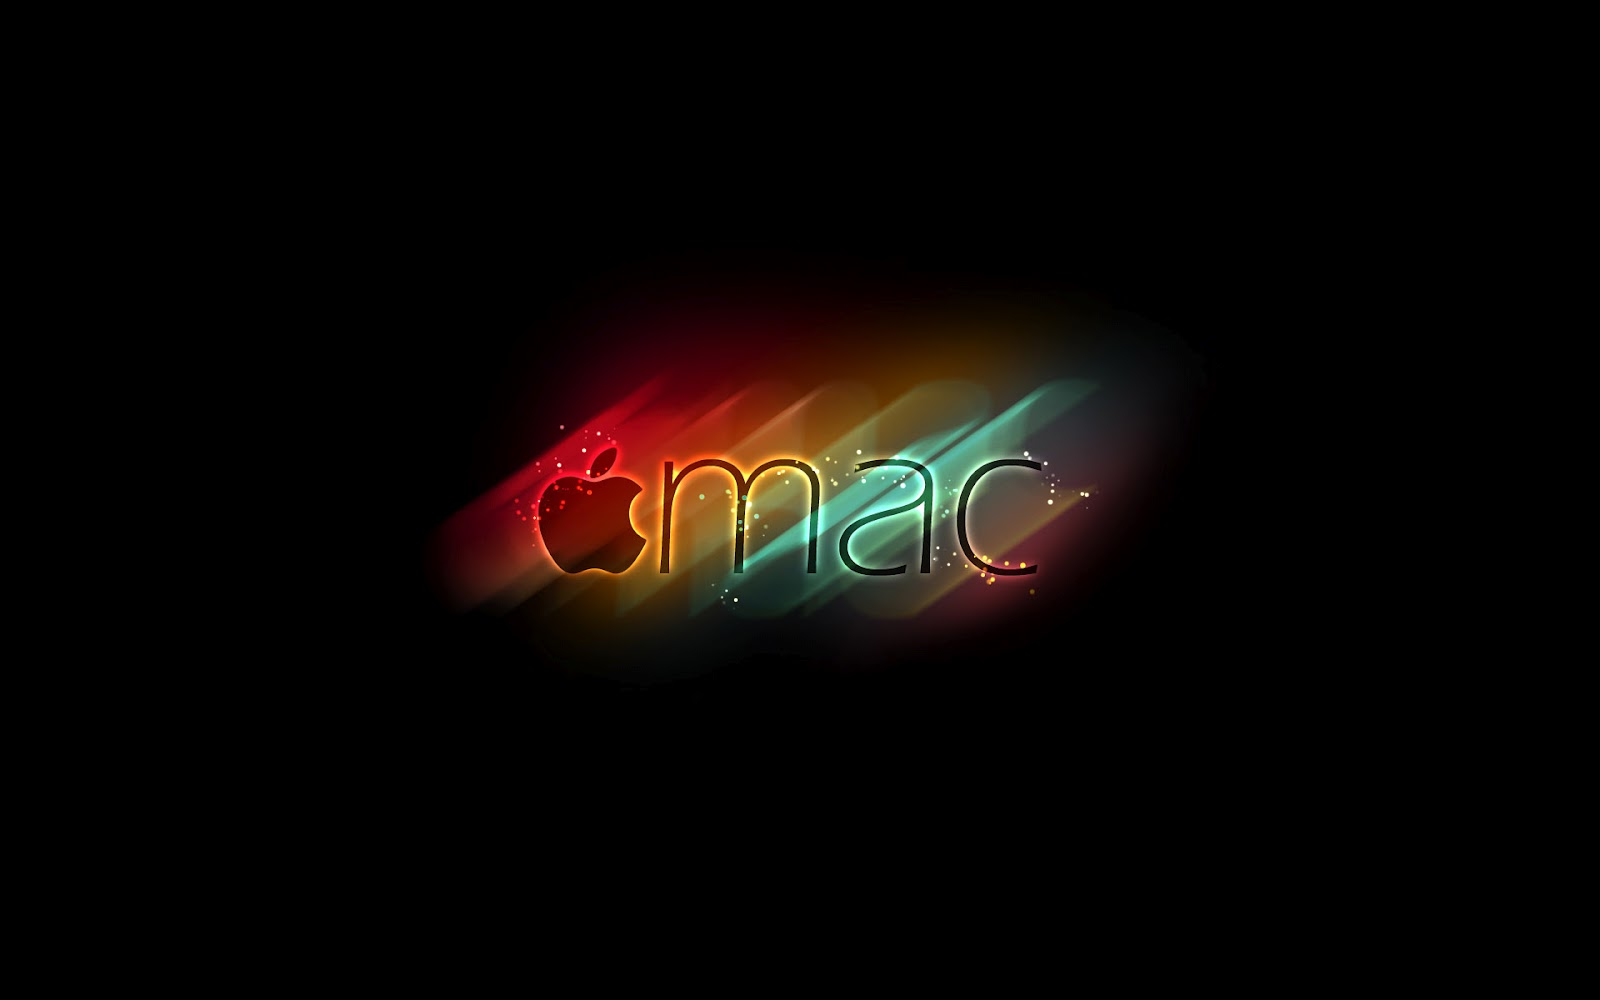 Apple Mac Wallpapers HD Nice Wallpapers 1600x1000